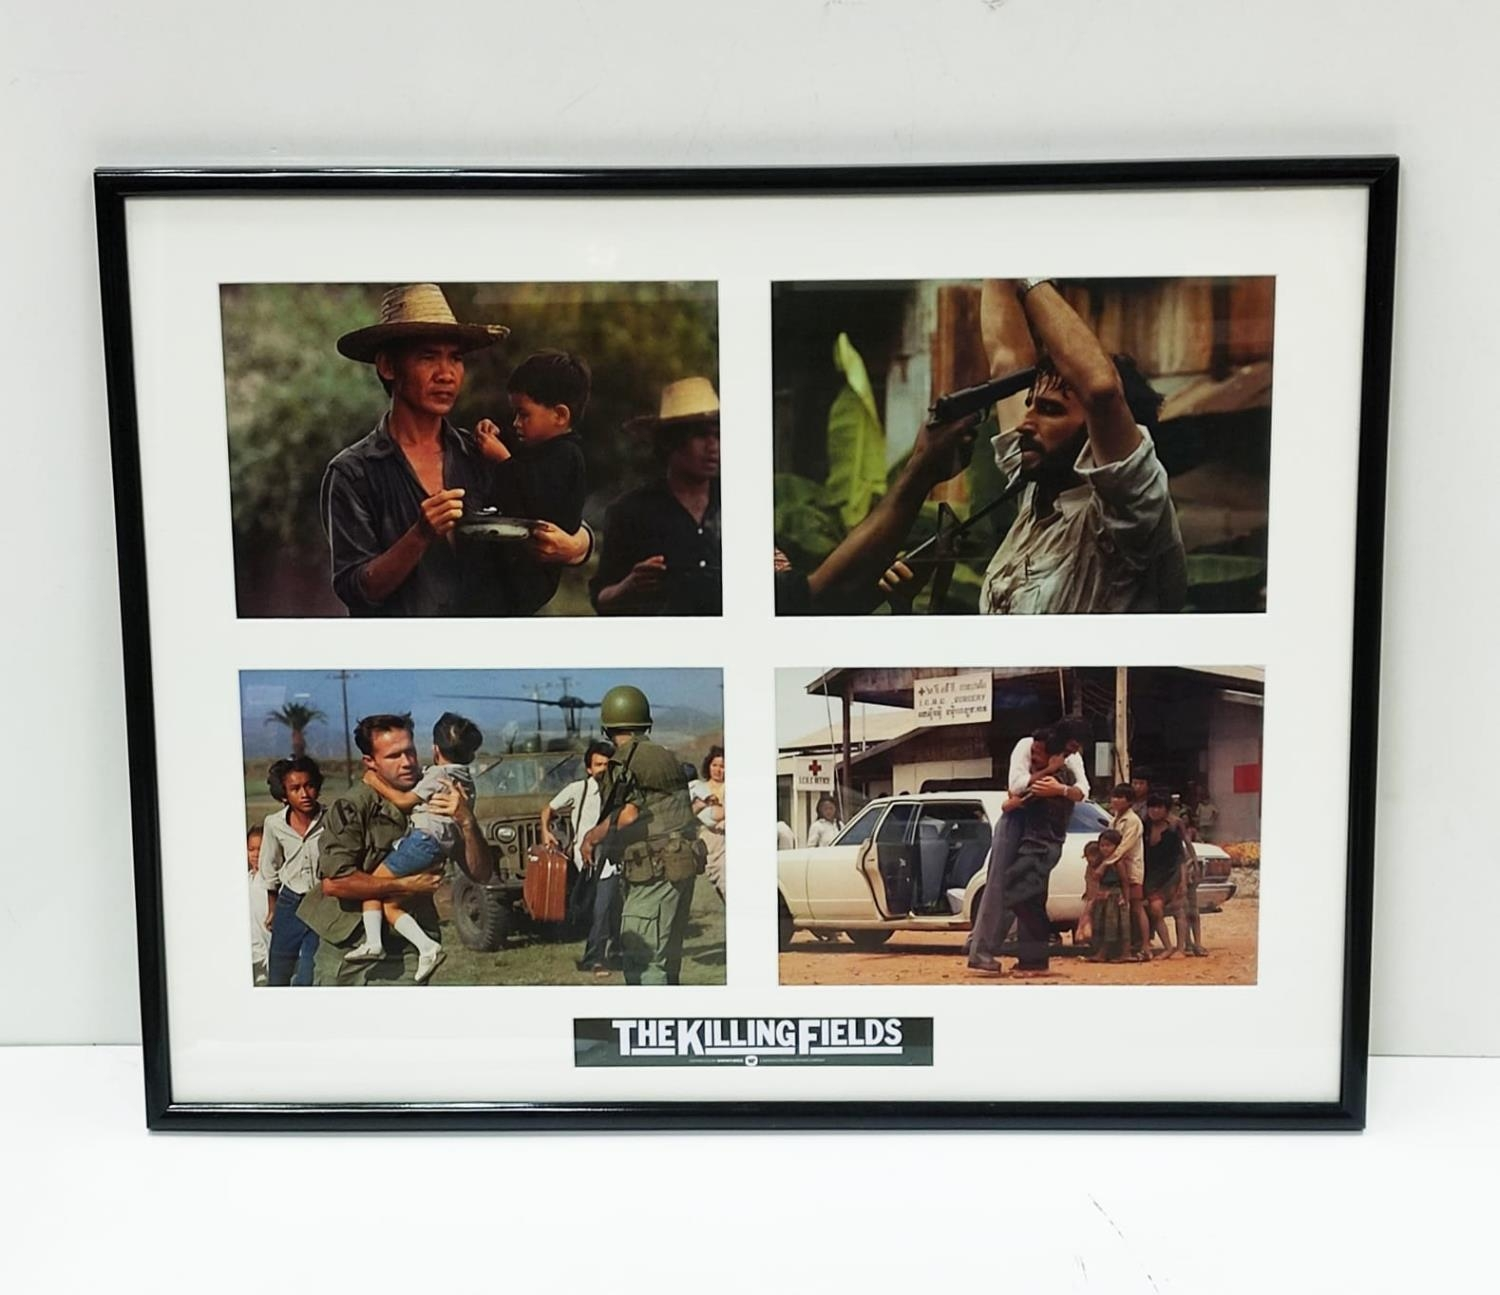 Framed and Glazed original film photographs from the film 'The Killing Fields'. Frame dimensions